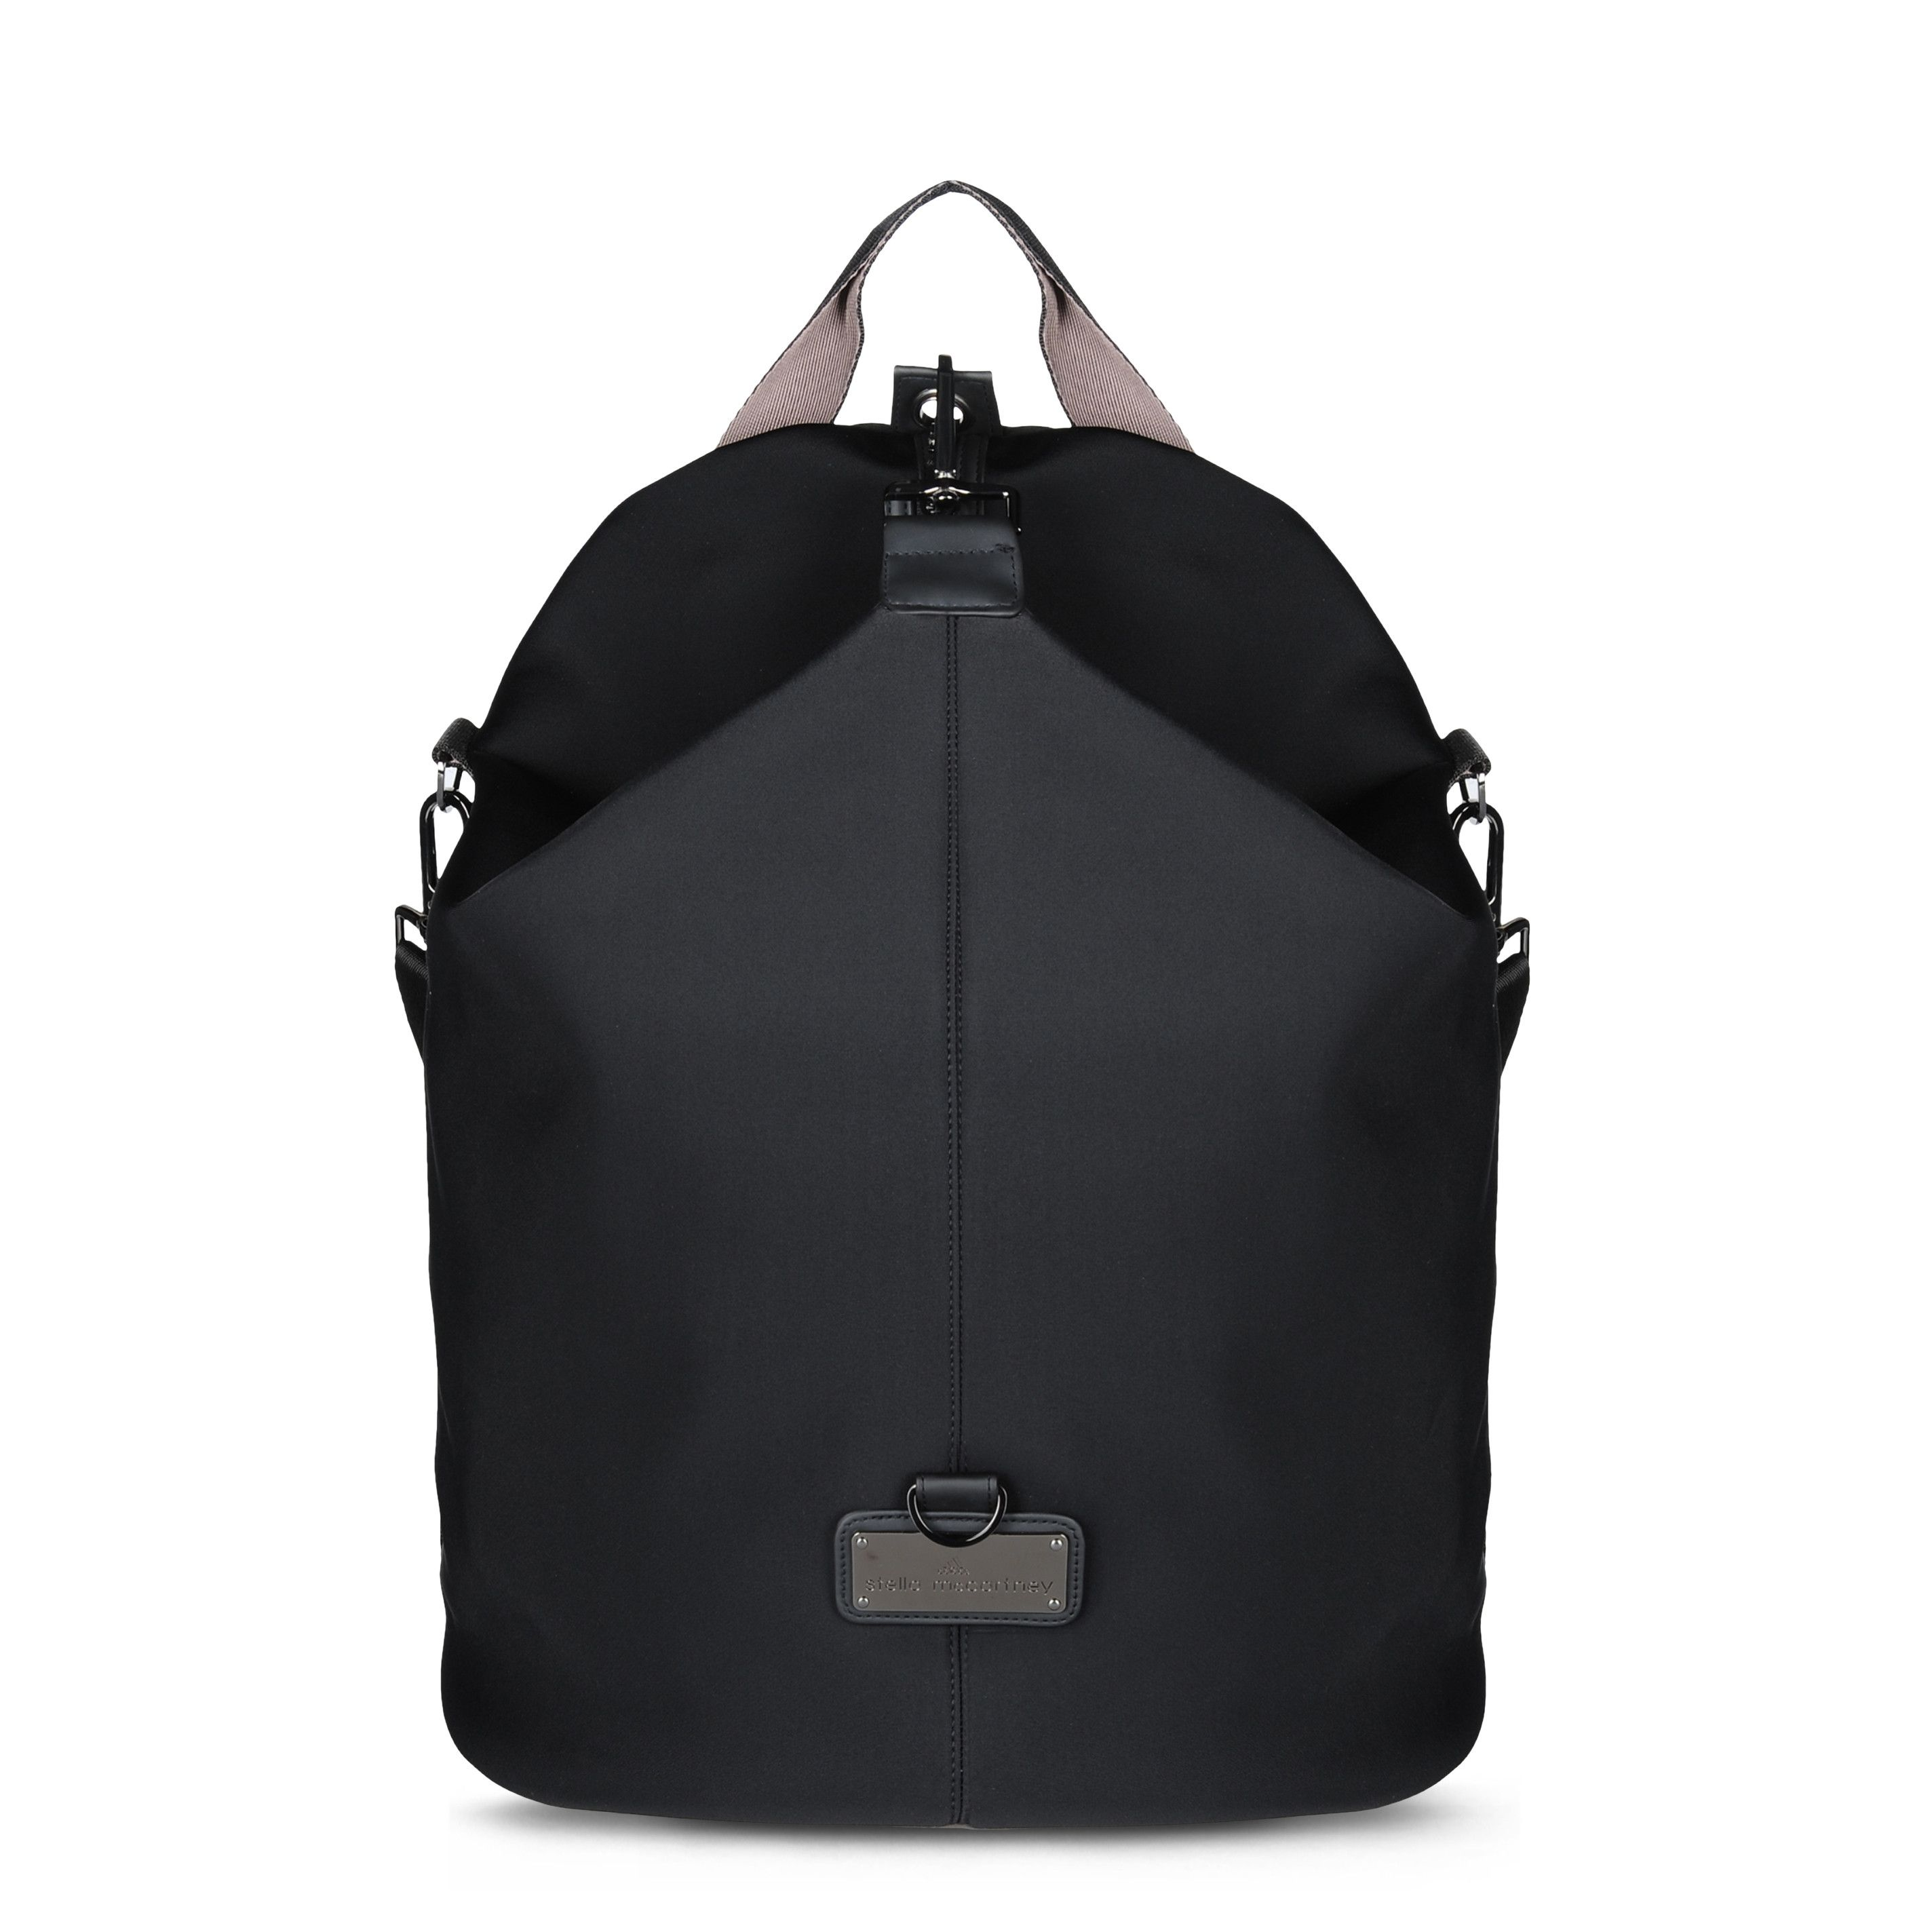 Black Studio Bag - Adidas By Stella Mccartney  6fdb92c6536c3